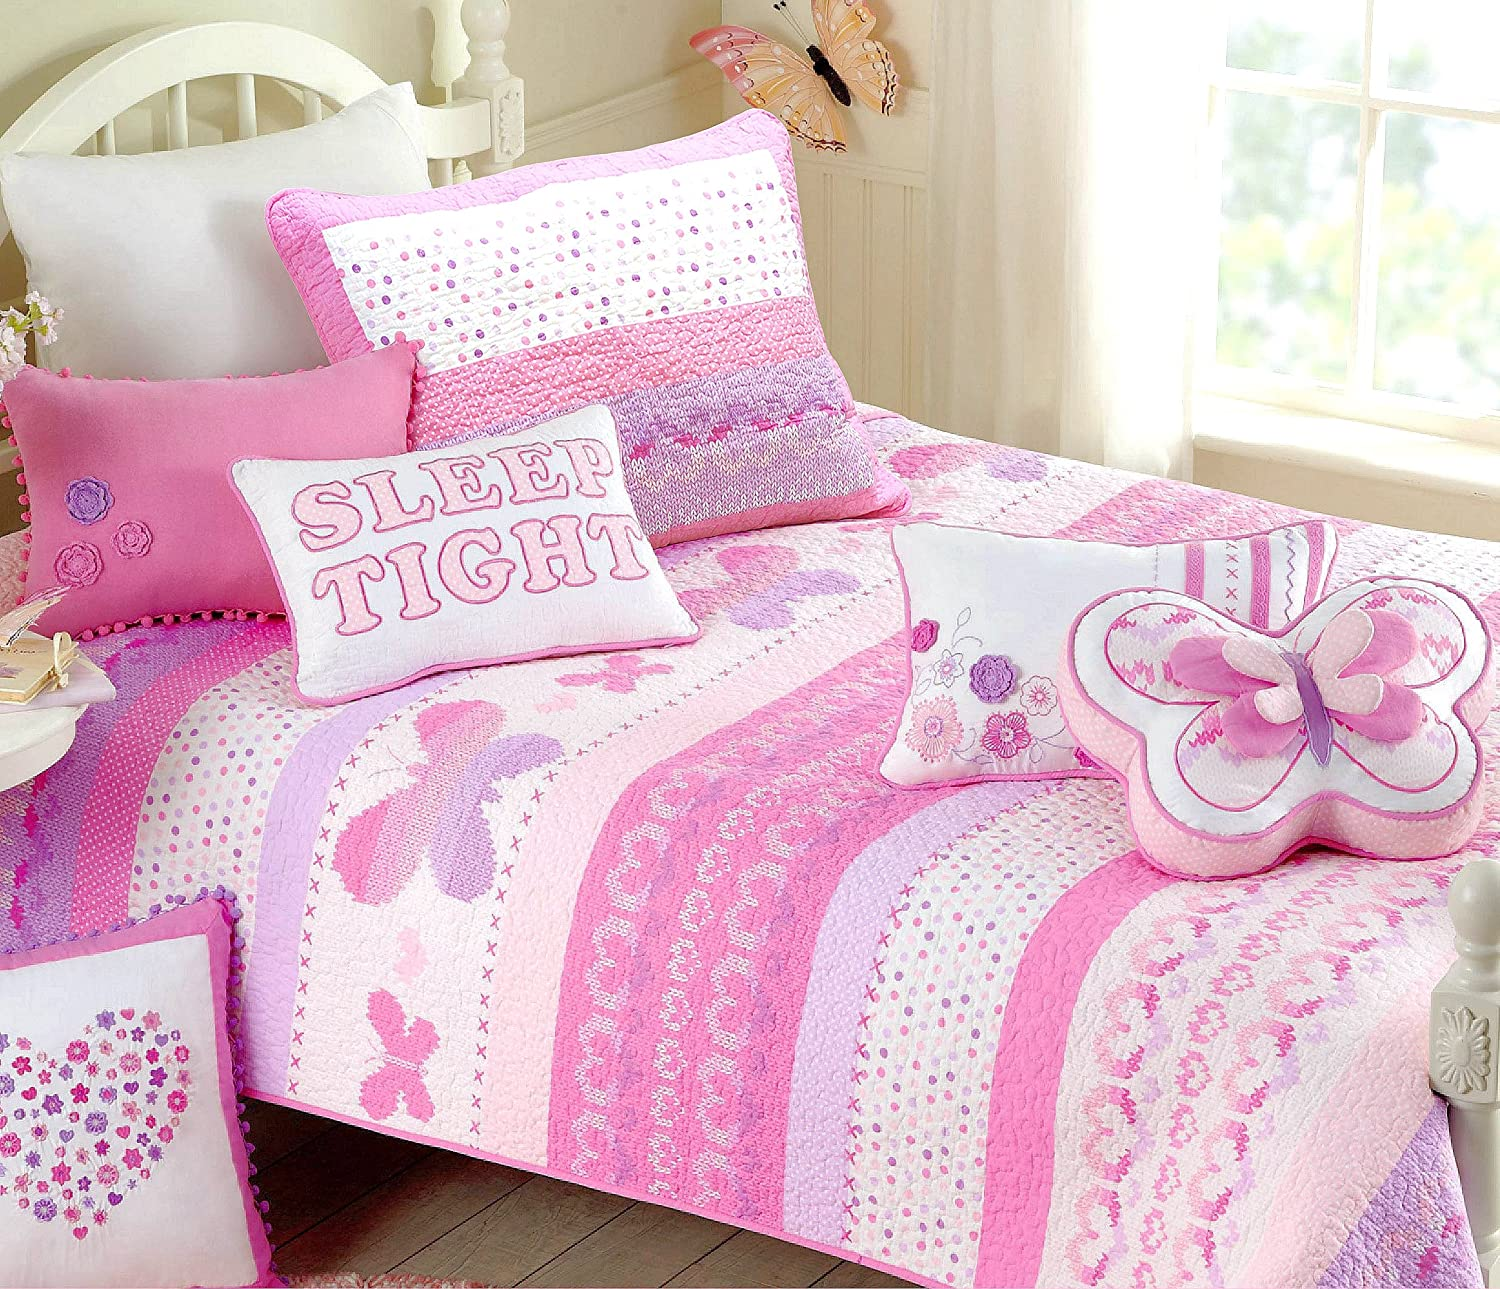 Cozy Line Home Fashions Pink Butterfly Knit 100% Cotton Reversible Quilt Bedding Set, Coverlet, Bedspreads (Full/Queen - 6 Piece: 1 Quilt + 2 Standard Shams + 3 Decorative Pillows)